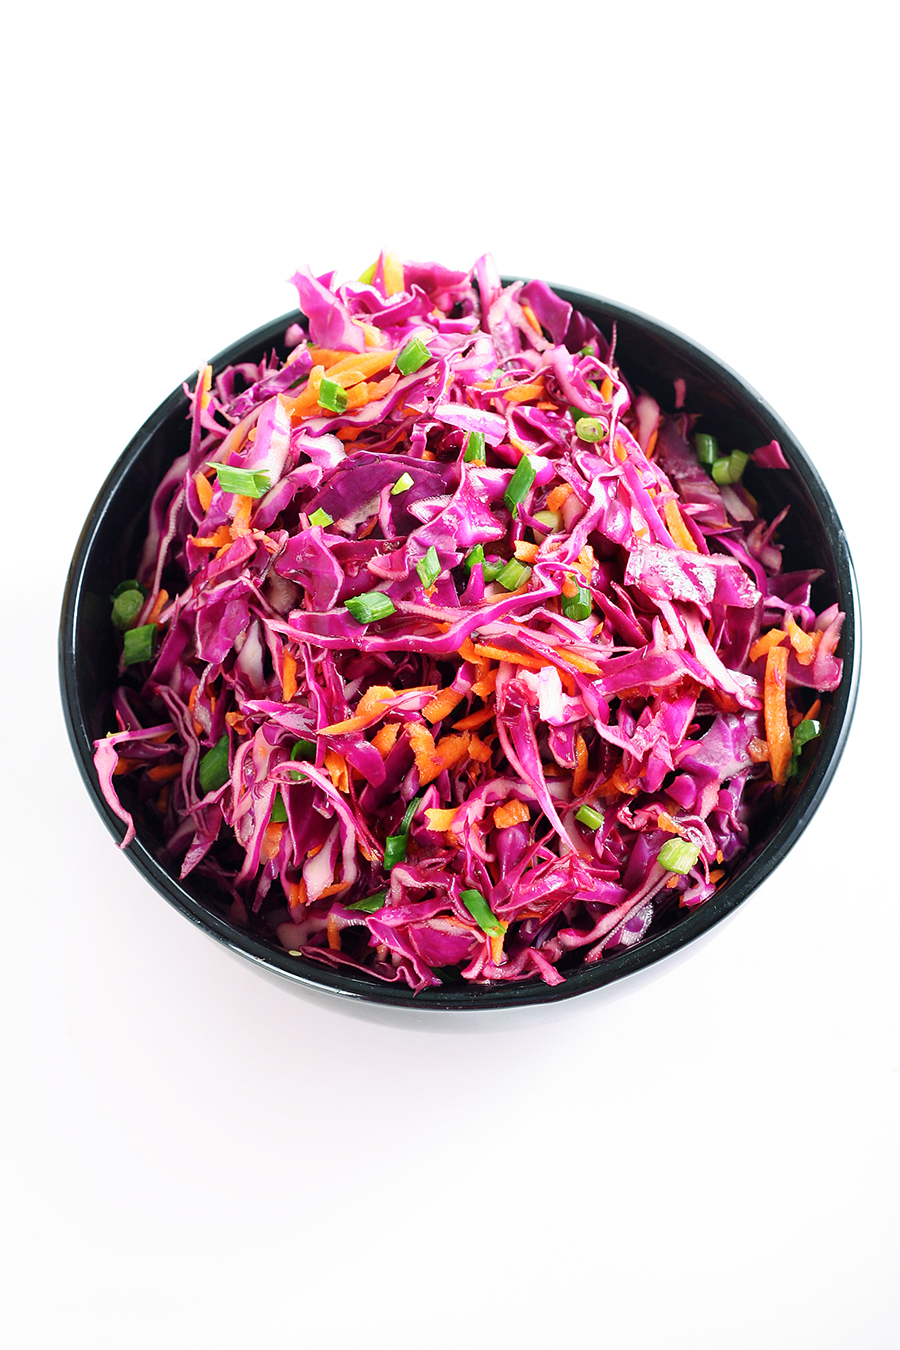 shot of raw red cabbage salad vertical